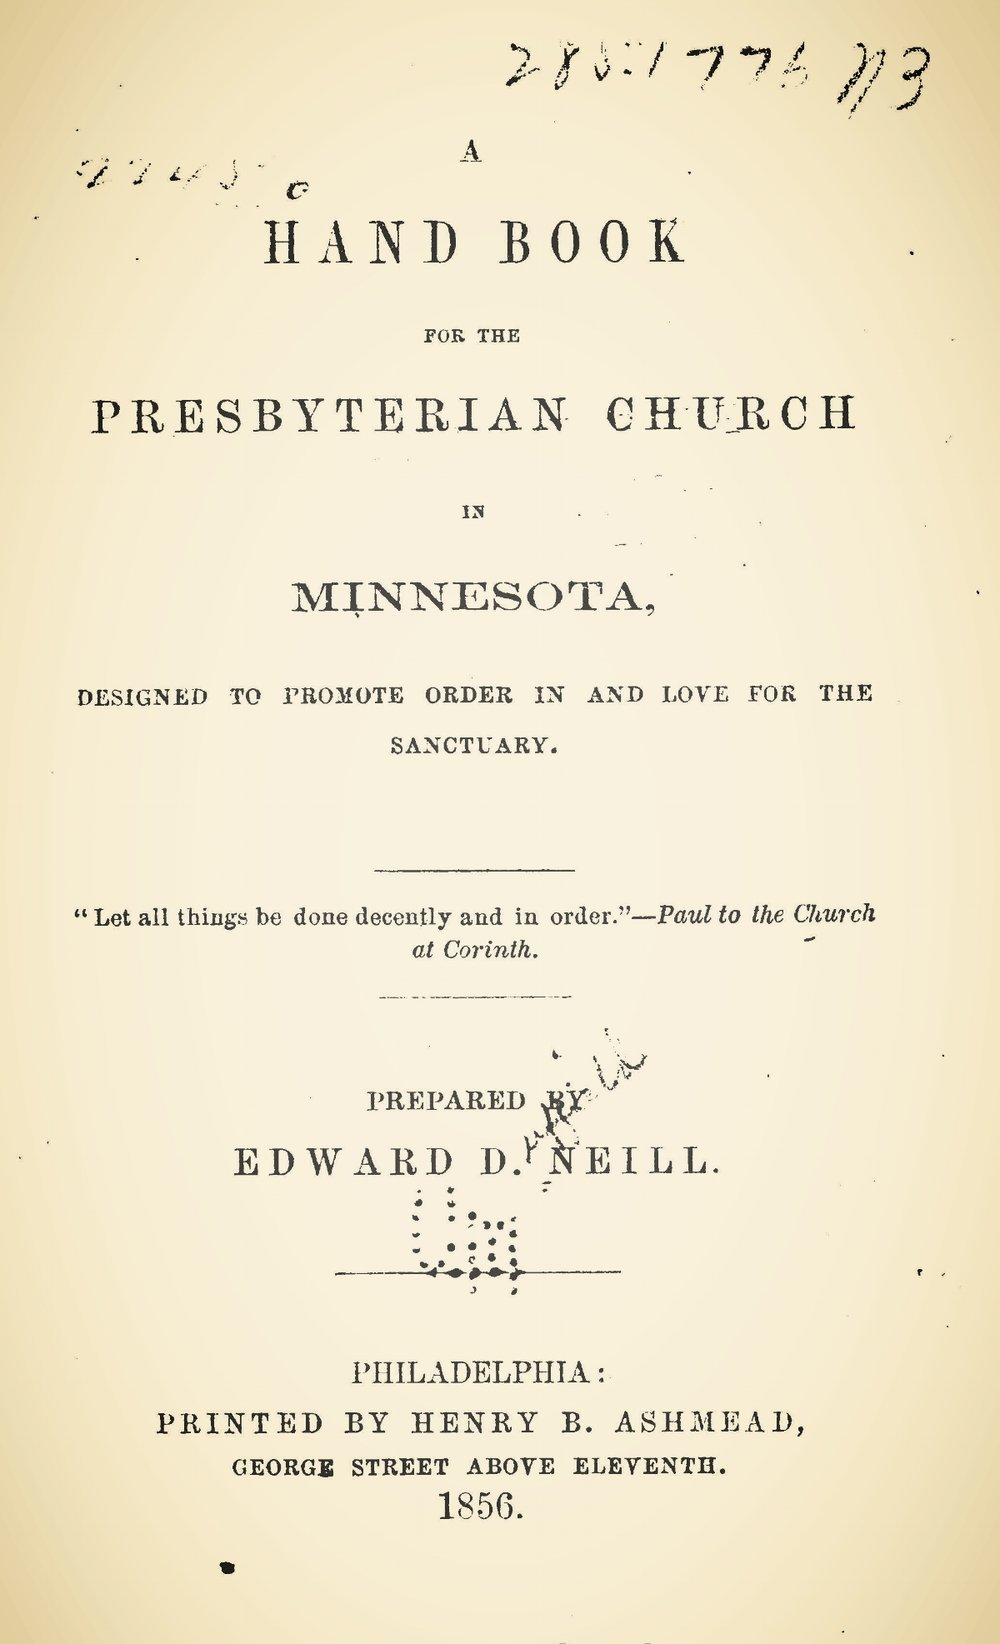 Neill, Edward Duffield, A Handbook for the Presbyterian Church in Minnesota Title Page.jpg